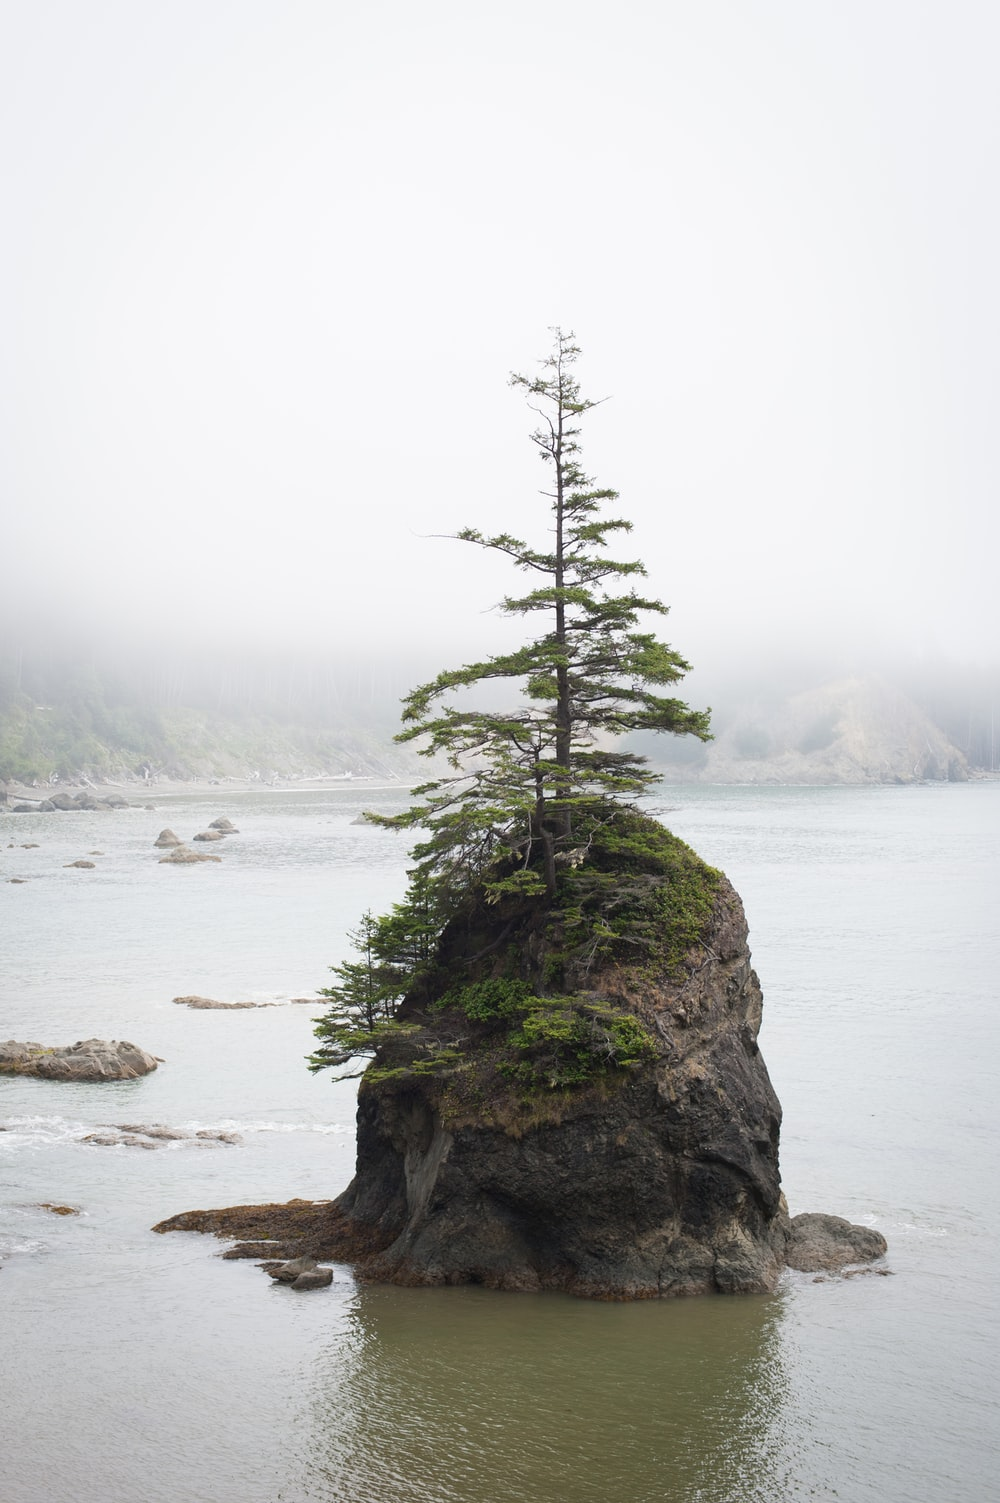 pine tree on top of gray boulder in the middle of body of water